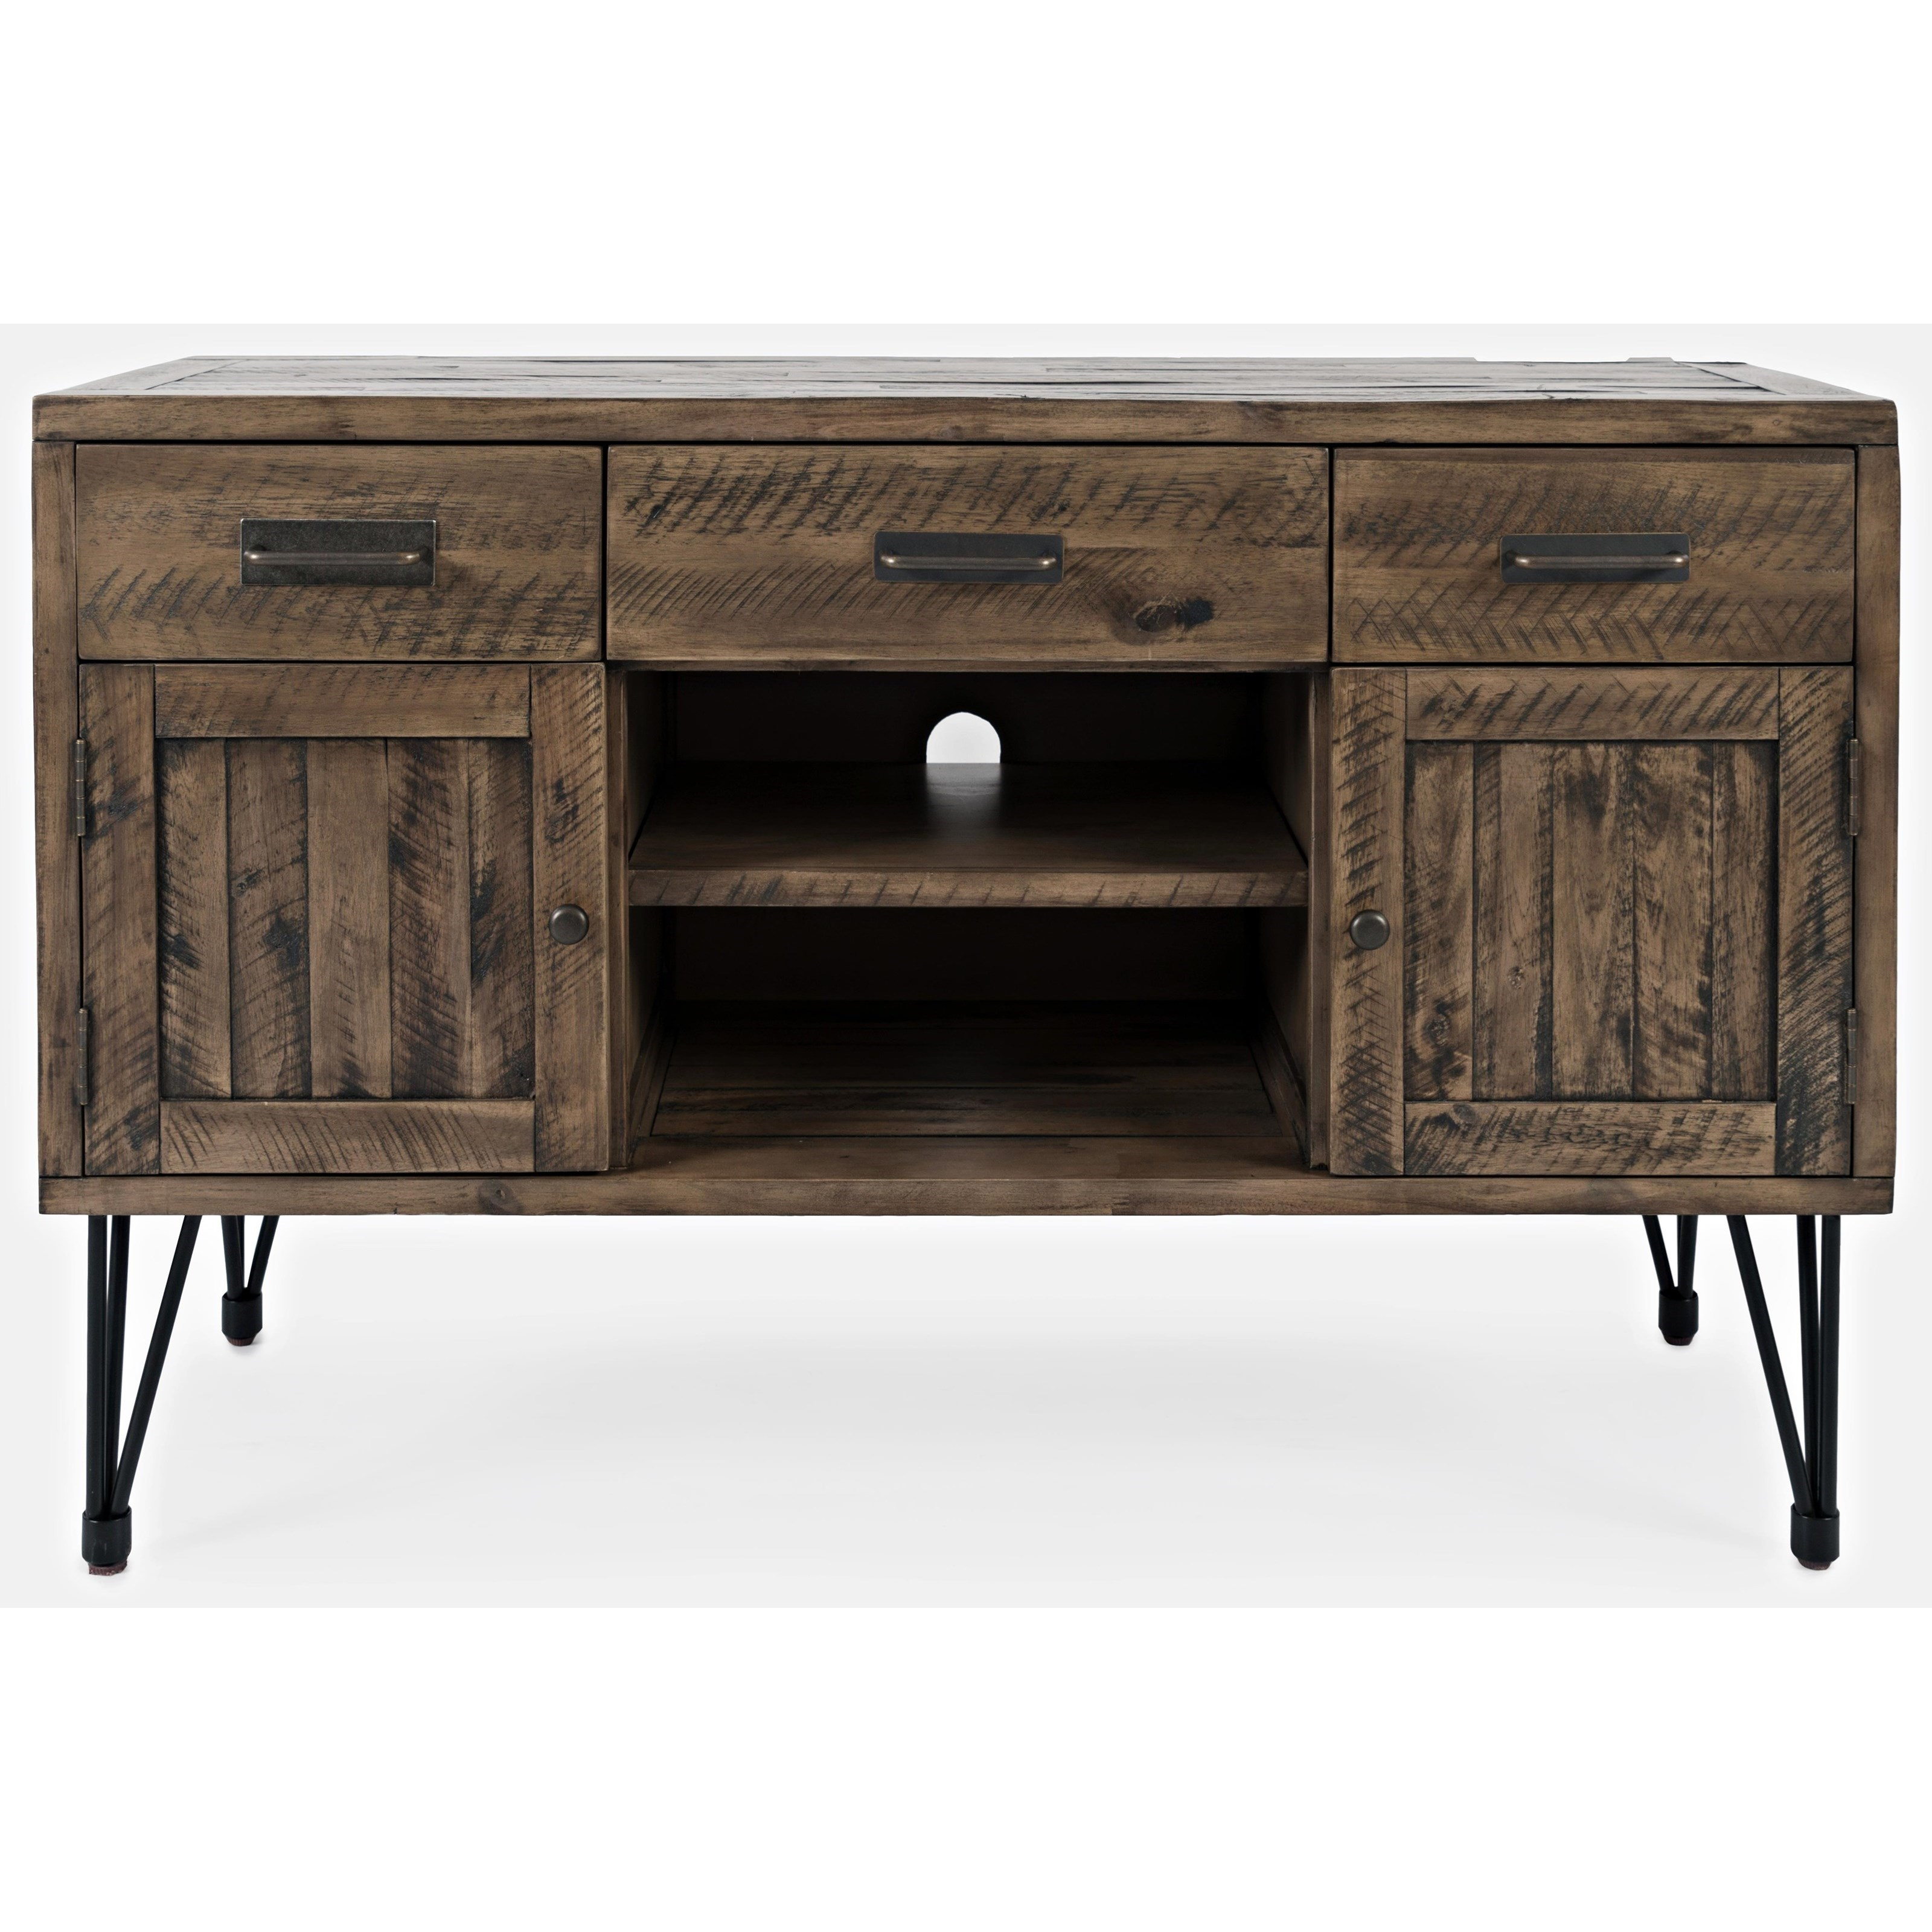 Blackstone Media Console by Jofran at Sparks HomeStore